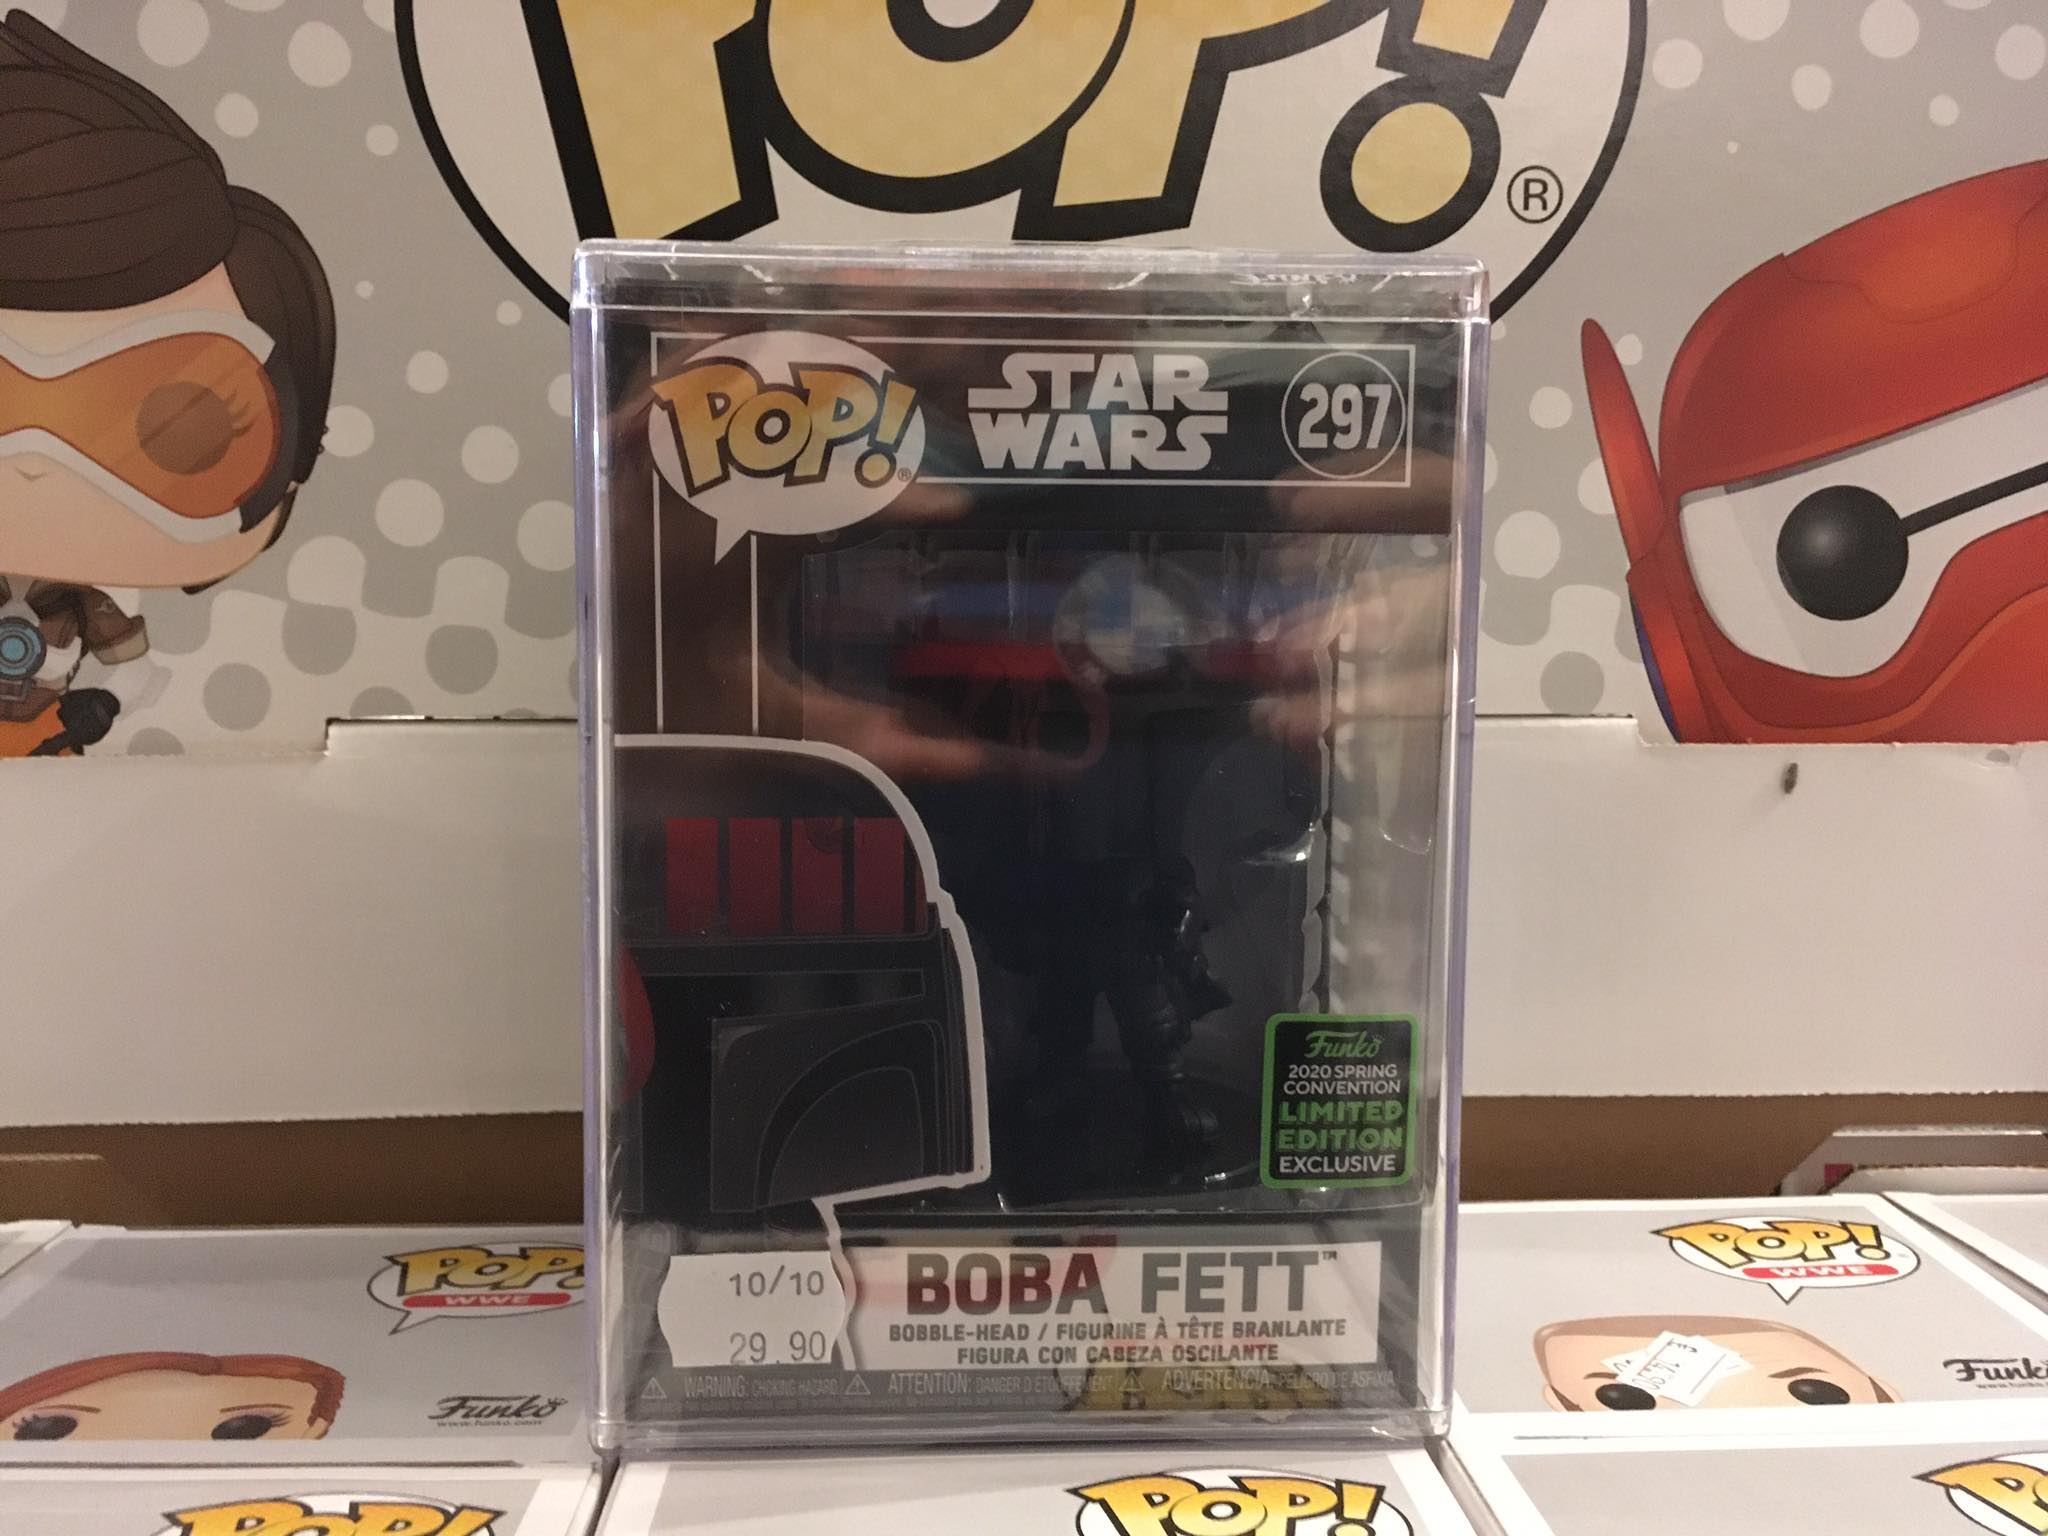 Star Wars Boba Fett Futura Spring Convention 2020 10/10